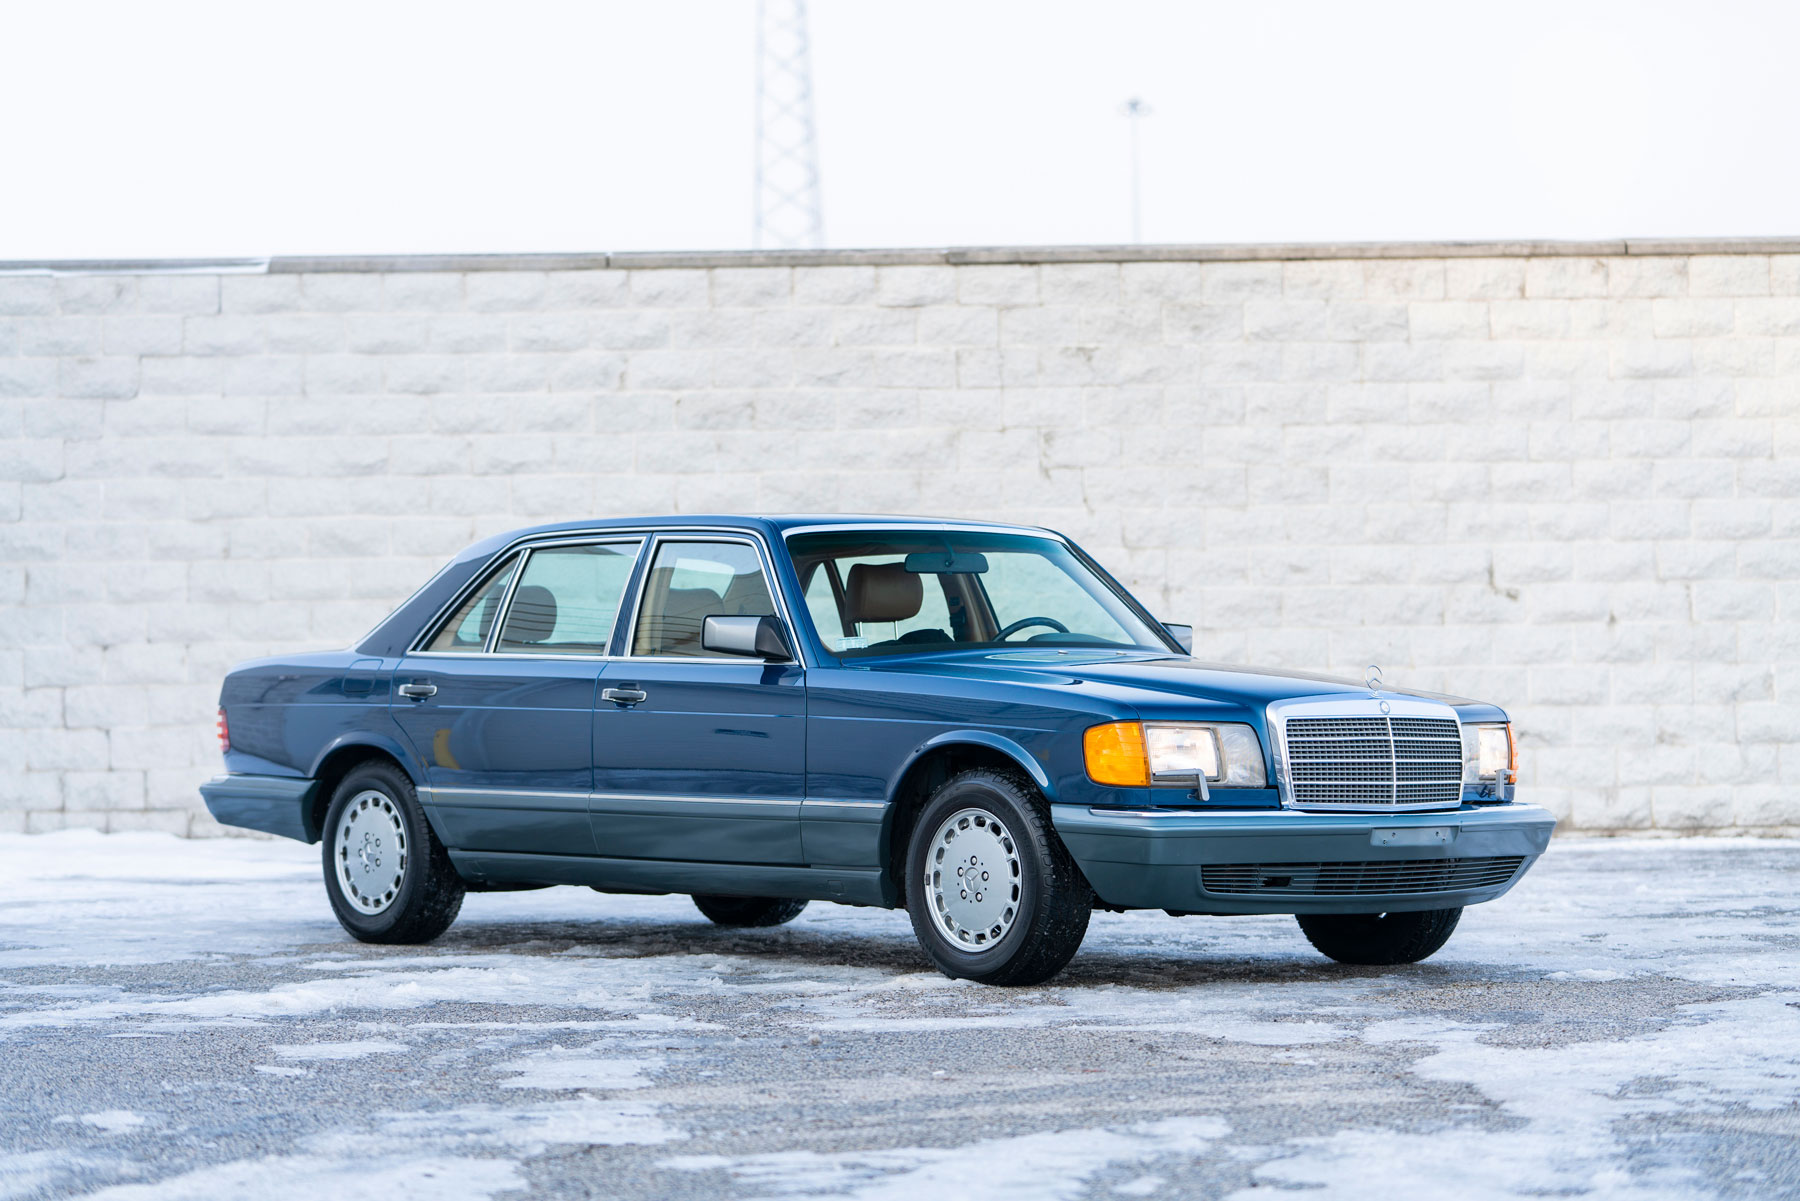 Auction houses prove that '80s and '90s cars are more than a fad thumbnail